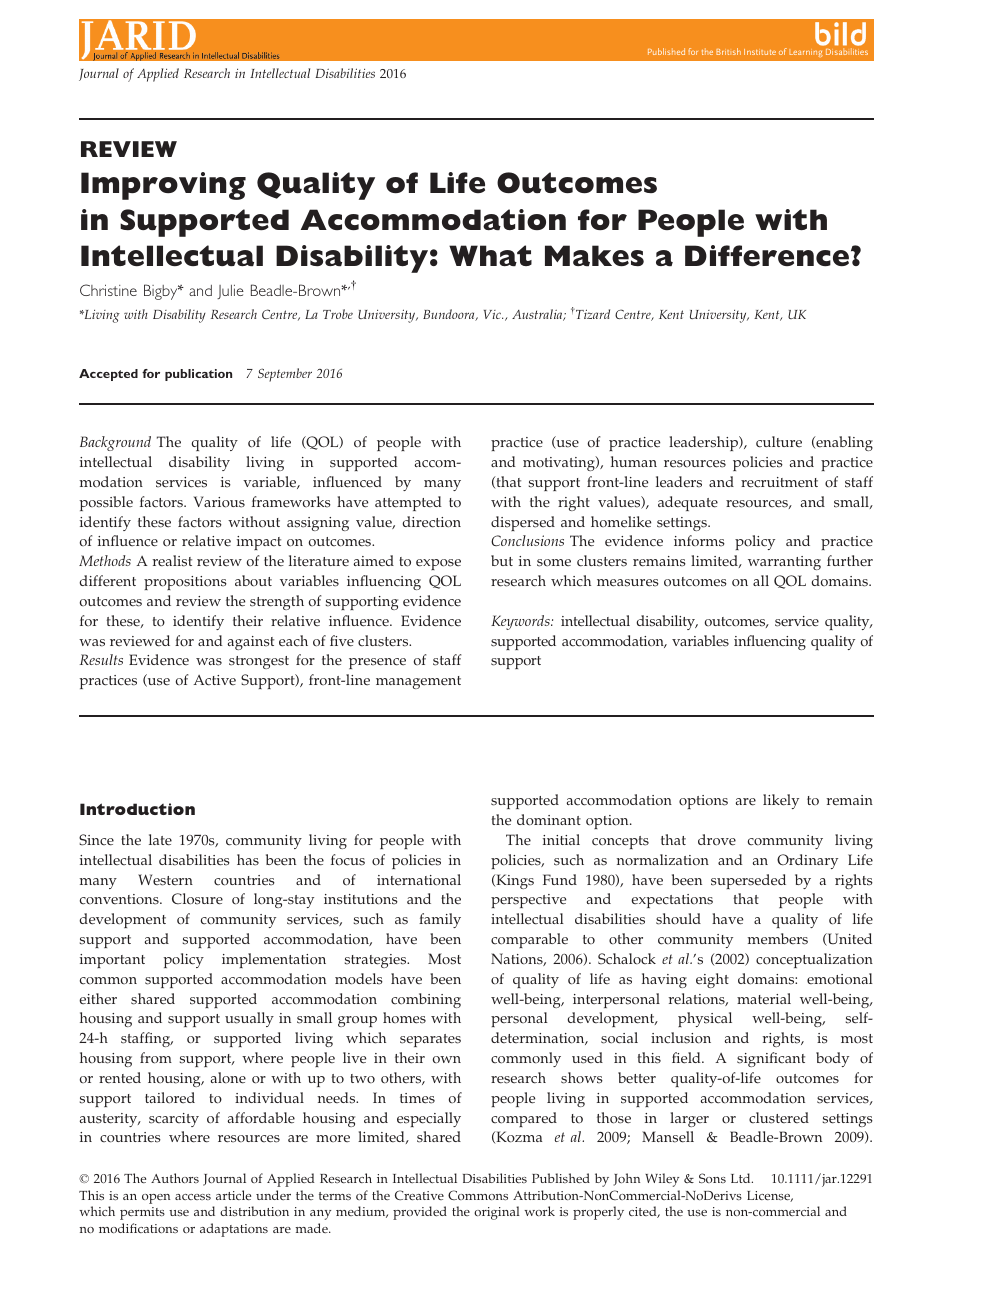 Improving Quality of Life Outcomes in Supported